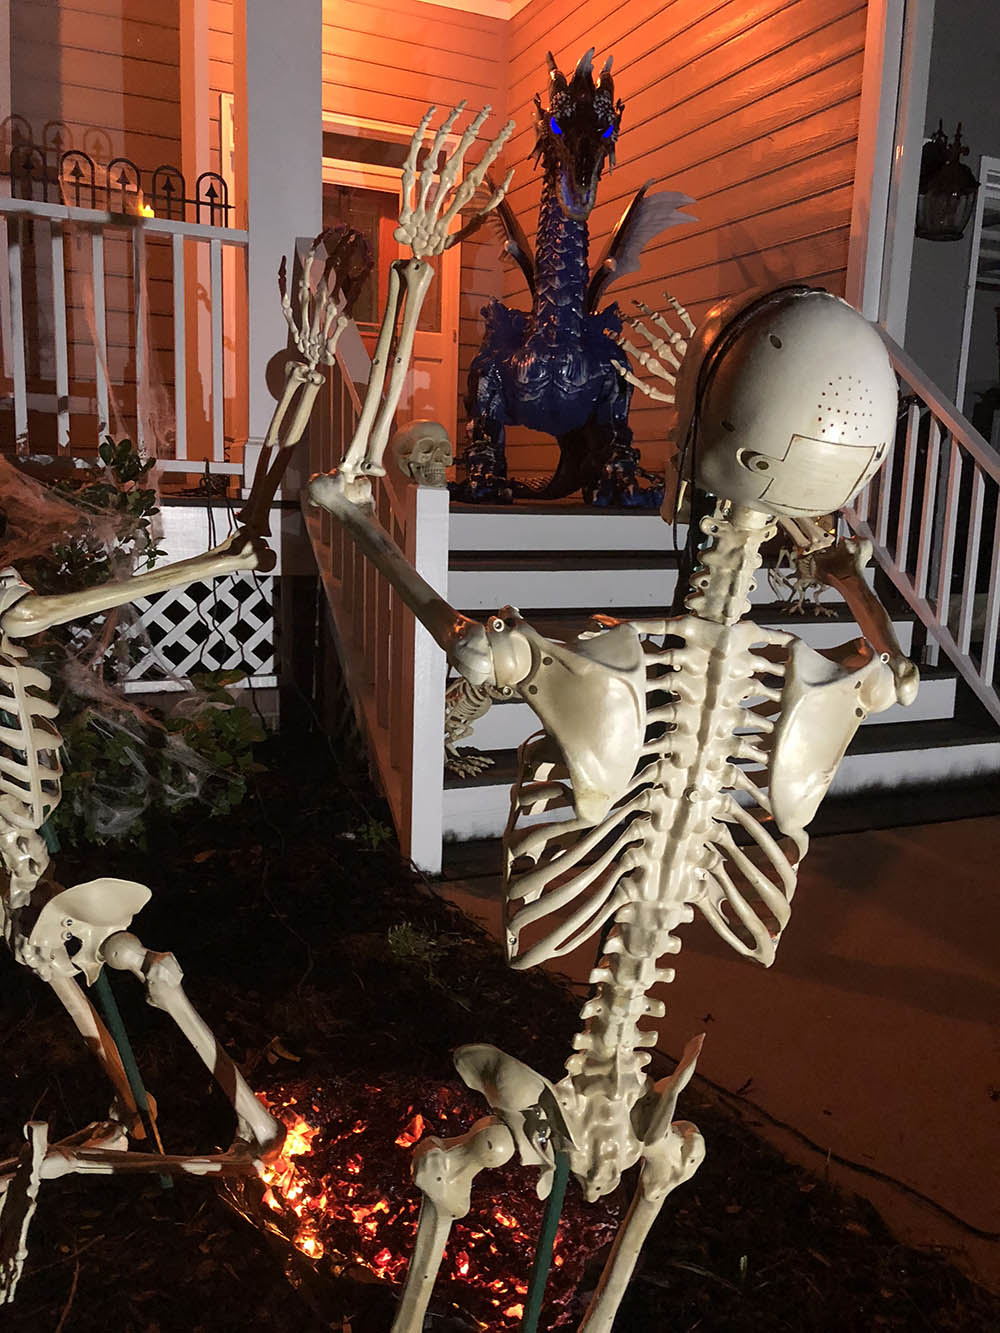 A pair of skeletons look up at a large dragon on a scary Halloween porch.